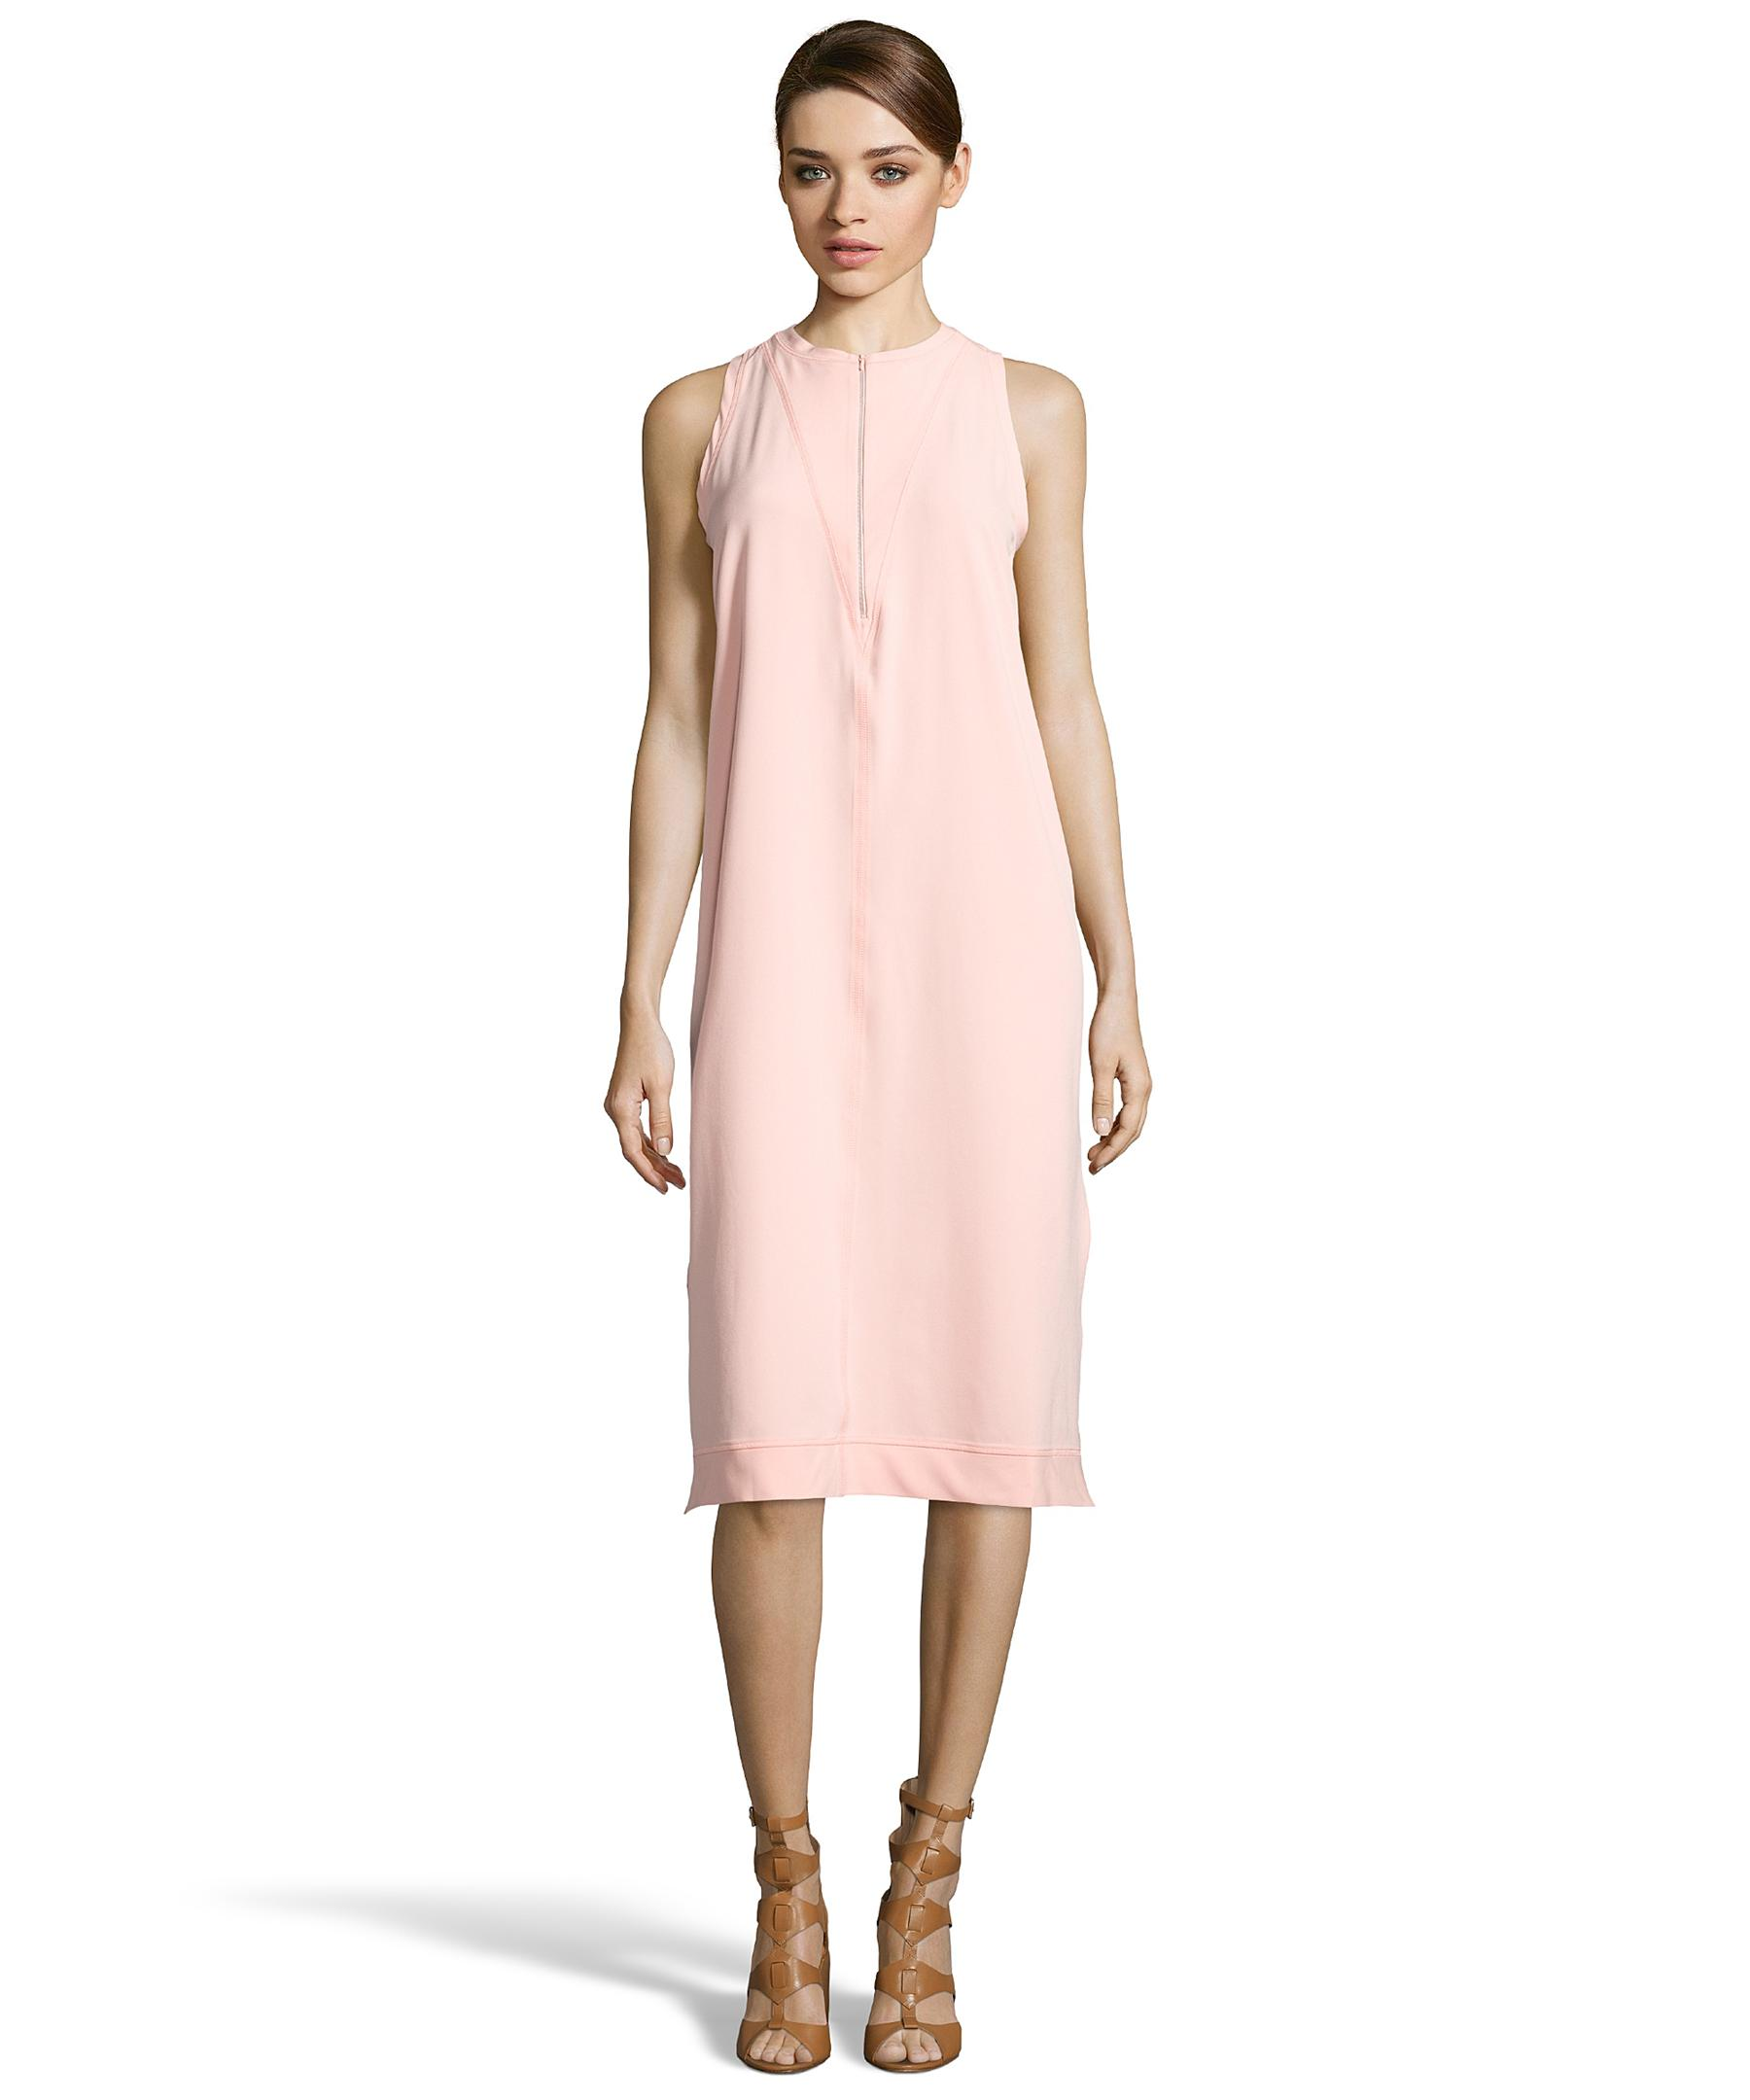 Flaunt a short pink lace shift dress that blends romance and comfort. This soft short party dress features a stylish relaxed design and a spandex-lace fabric for a cute look at any special celebration.